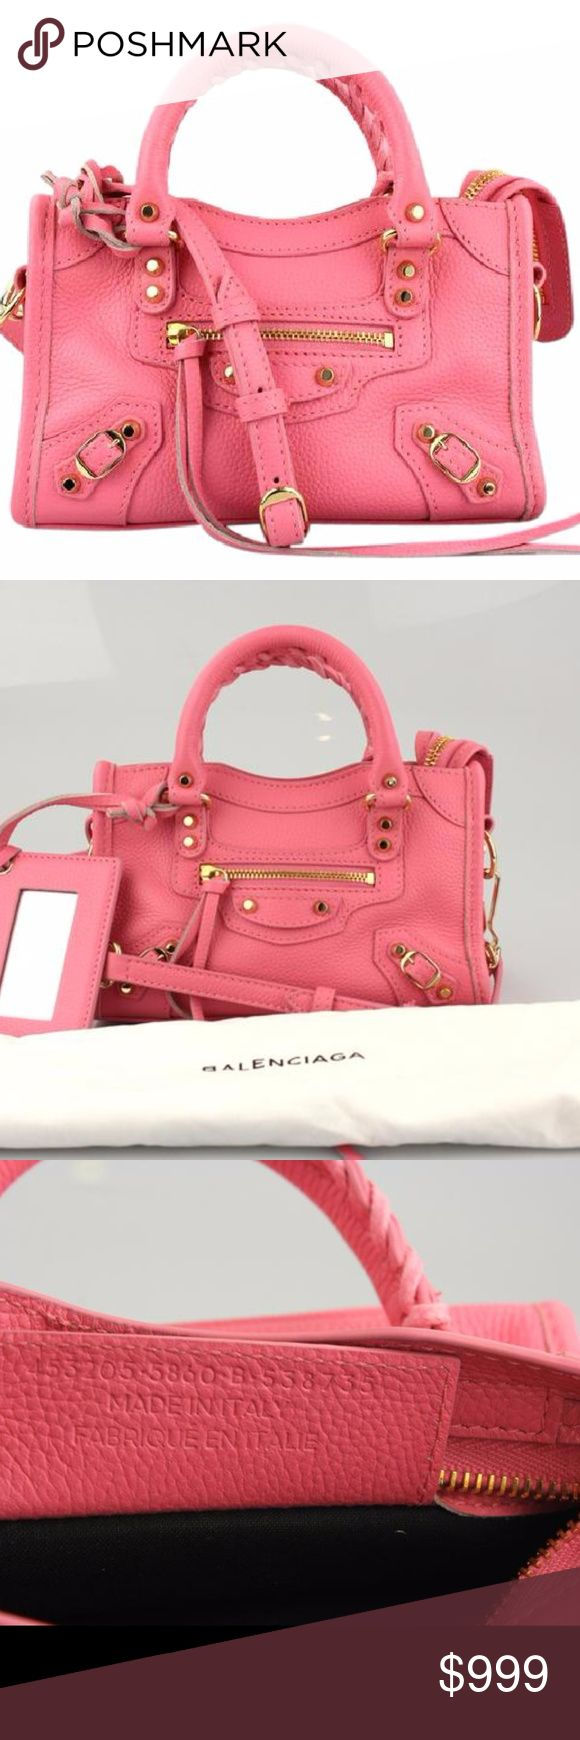 "Balenciaga Nano City Pink Satchel CONDITION Gently Used Very light scuffing and cracking on the bottom corners. Hardware has light scratches throughout.   DESCRIPTION Balenciaga Nano City Satchel Pink leather Gold tone hardware 2"" Handle drop 23"" Strap drop Made in Italy 1 Interior slip pocket 1 Exterior zip pocket Removable leather frame mirror Top zip closure Dust bag is included  Contact Seller  DETAILS Type:Satchels Color:PInk Brand:Balenciaga Fabric:Leather Measurements:7.25""L x 4.5""H x…"